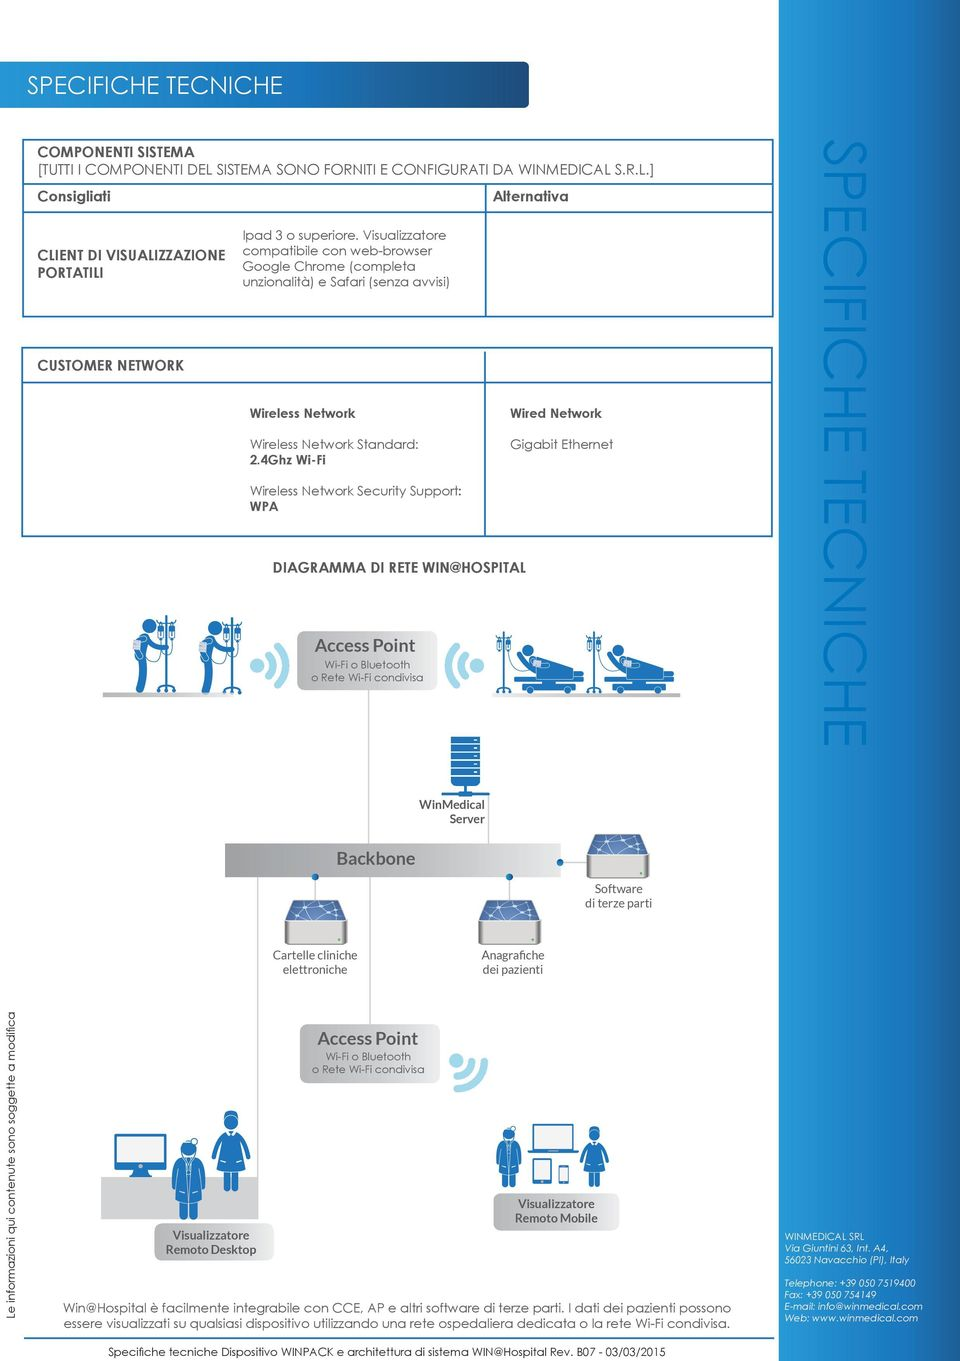 4Ghz Wi-Fi Wireless Network Security Support: WPA DIAGRAMMA DI RETE WIN@HOSPITAL Access Point Wi-Fi o Bluetooth o Rete Wi-Fi condivisa Alternativa Wired Network Gigabit Ethernet WinMedical Server